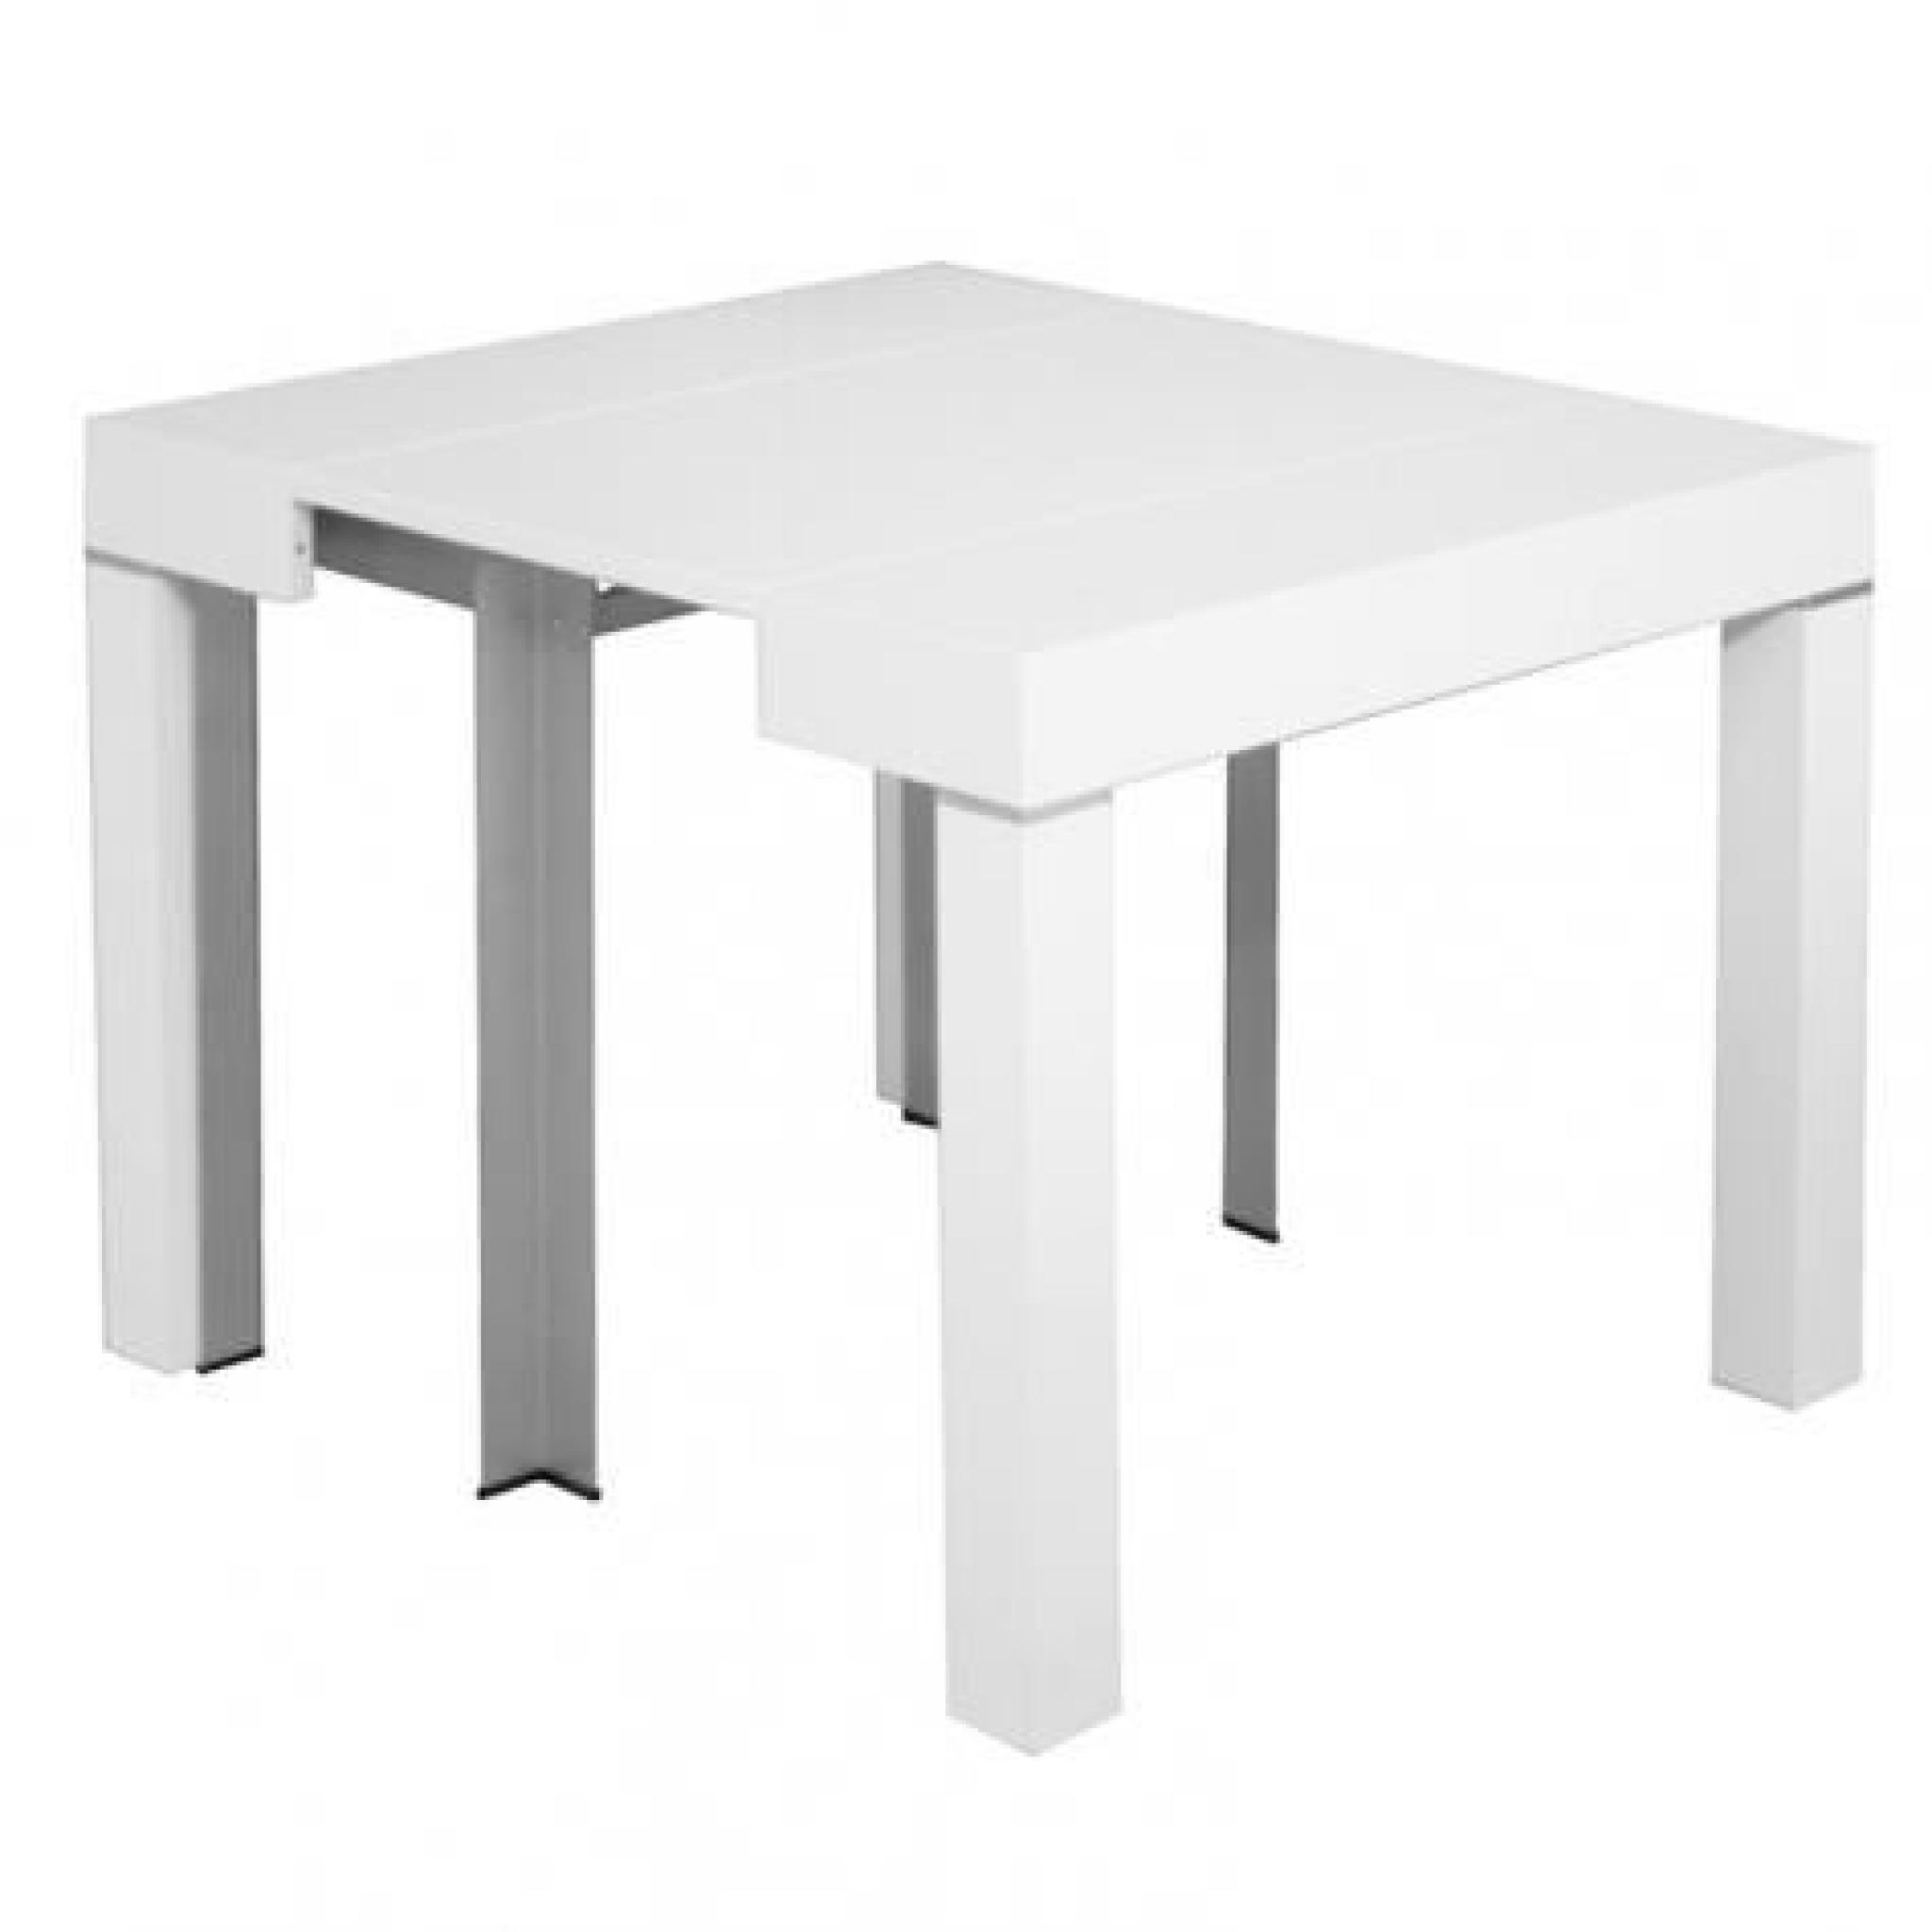 Table console extensible blanche laqu e 4 rallonges alesia for Table blanche extensible